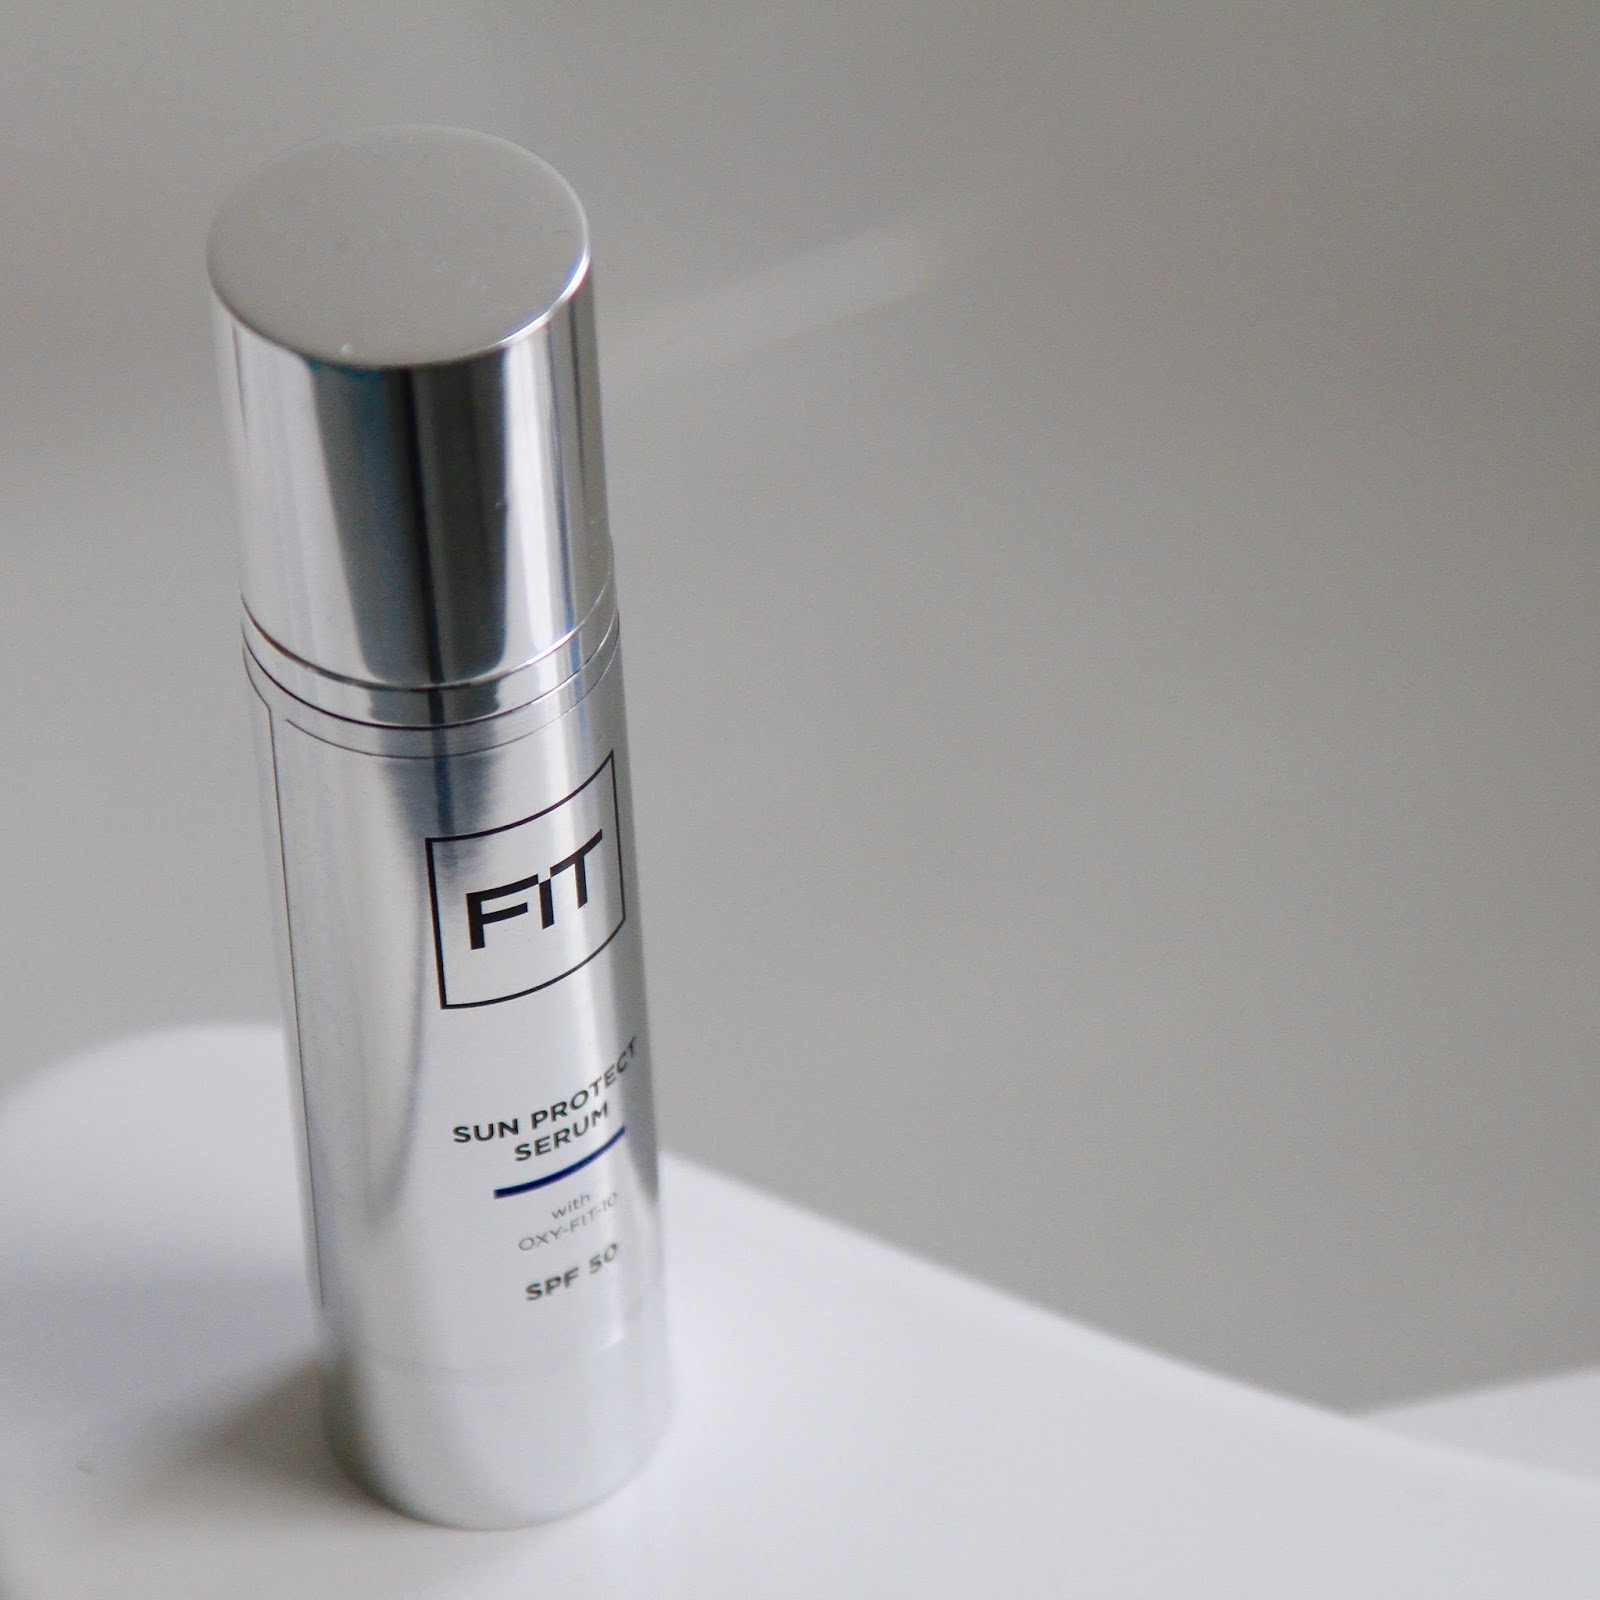 Fit Sun Protect Serum SPF The G Edit